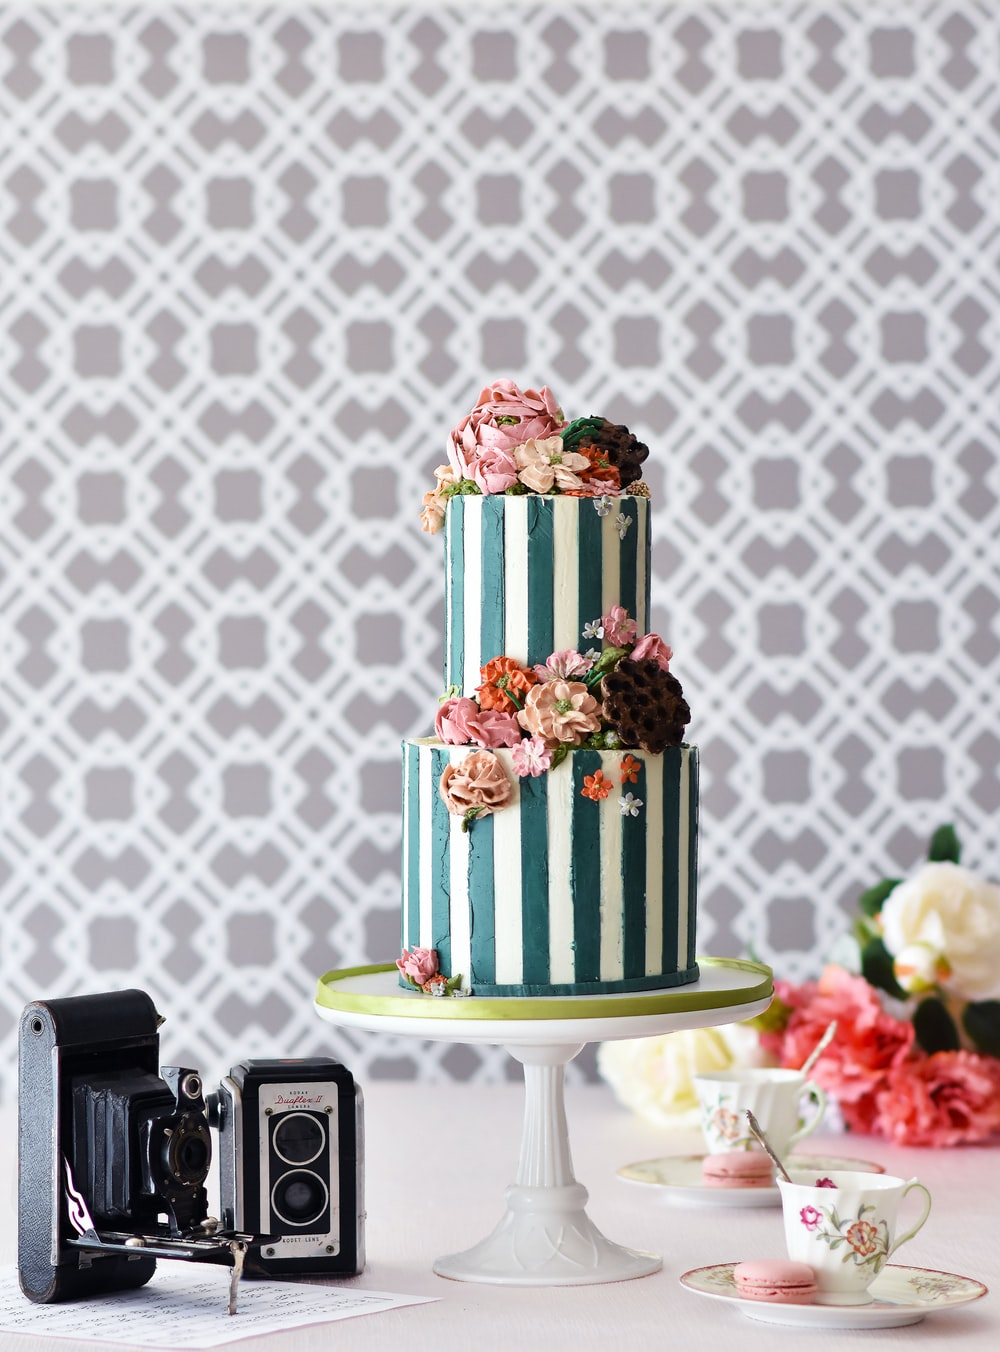 green and white cake on white table